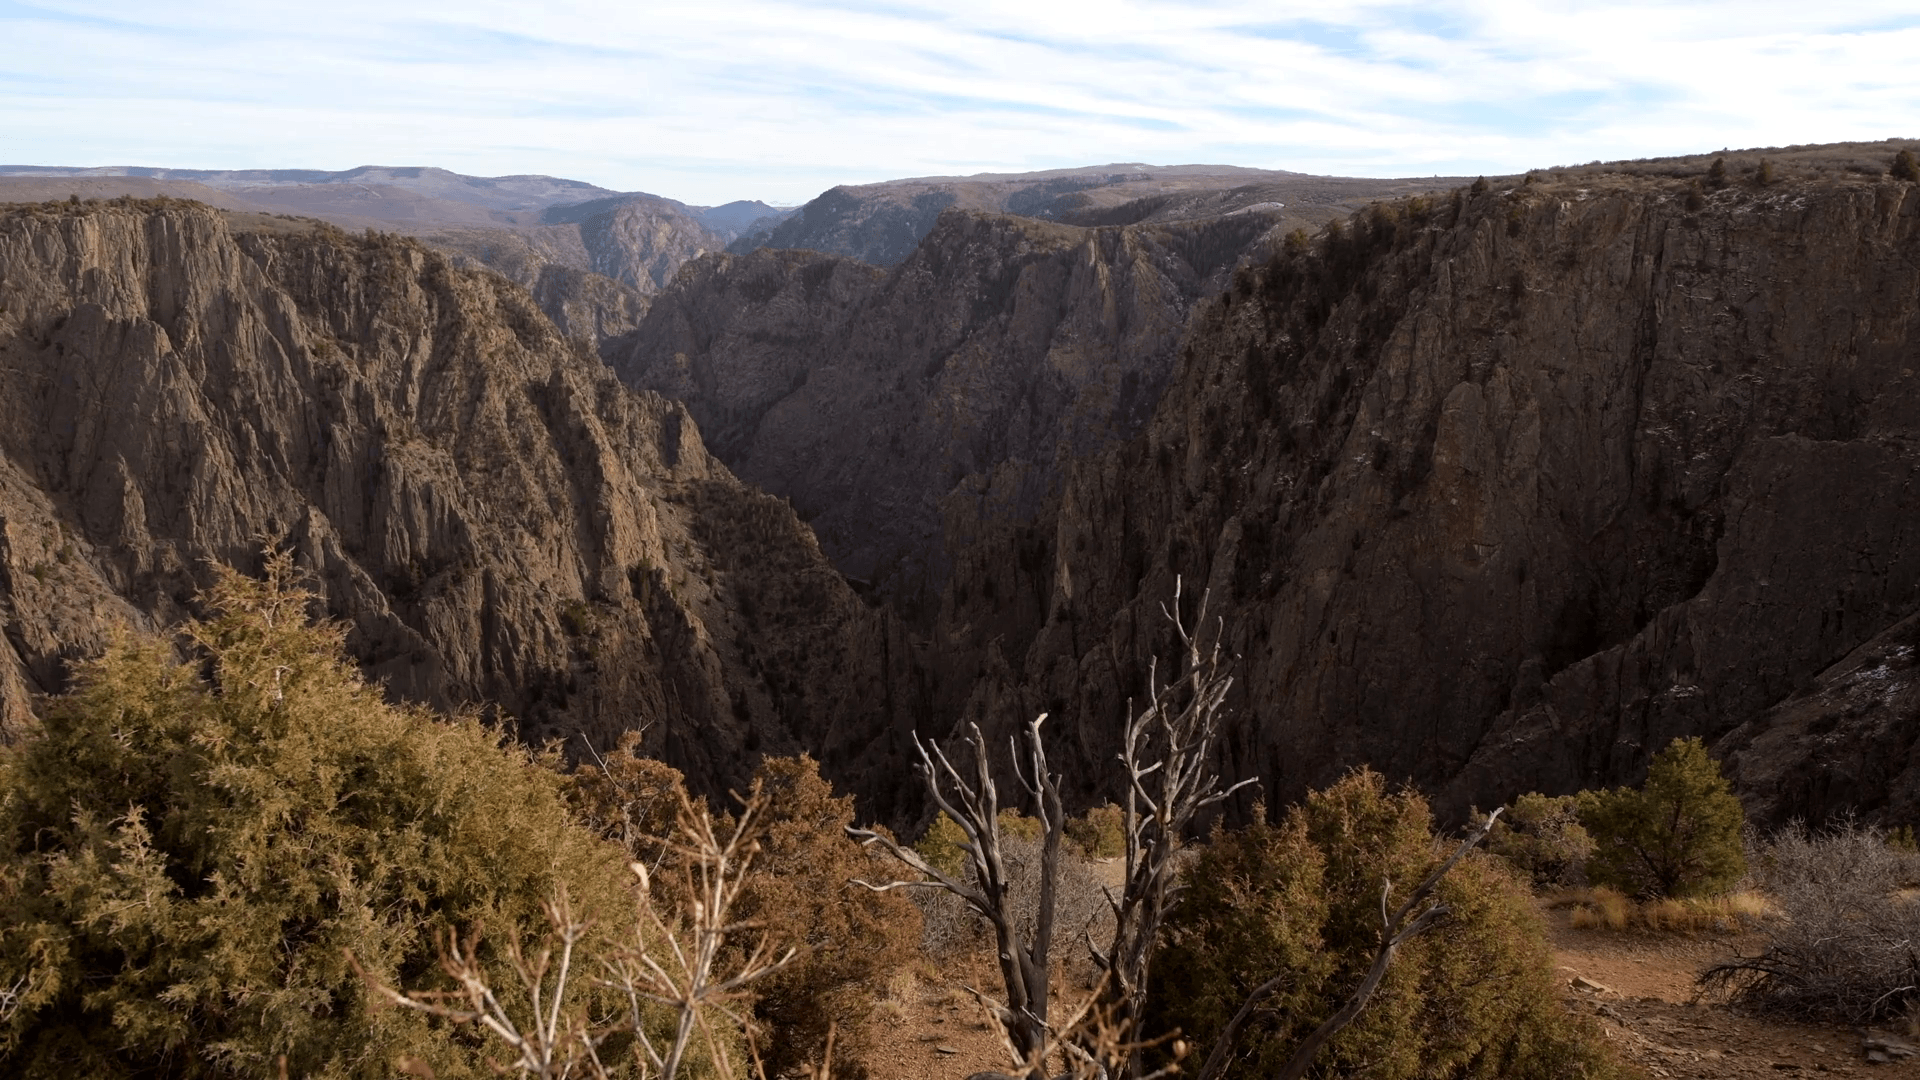 Scenic Black Canyon of the Gunnison National Park in Western